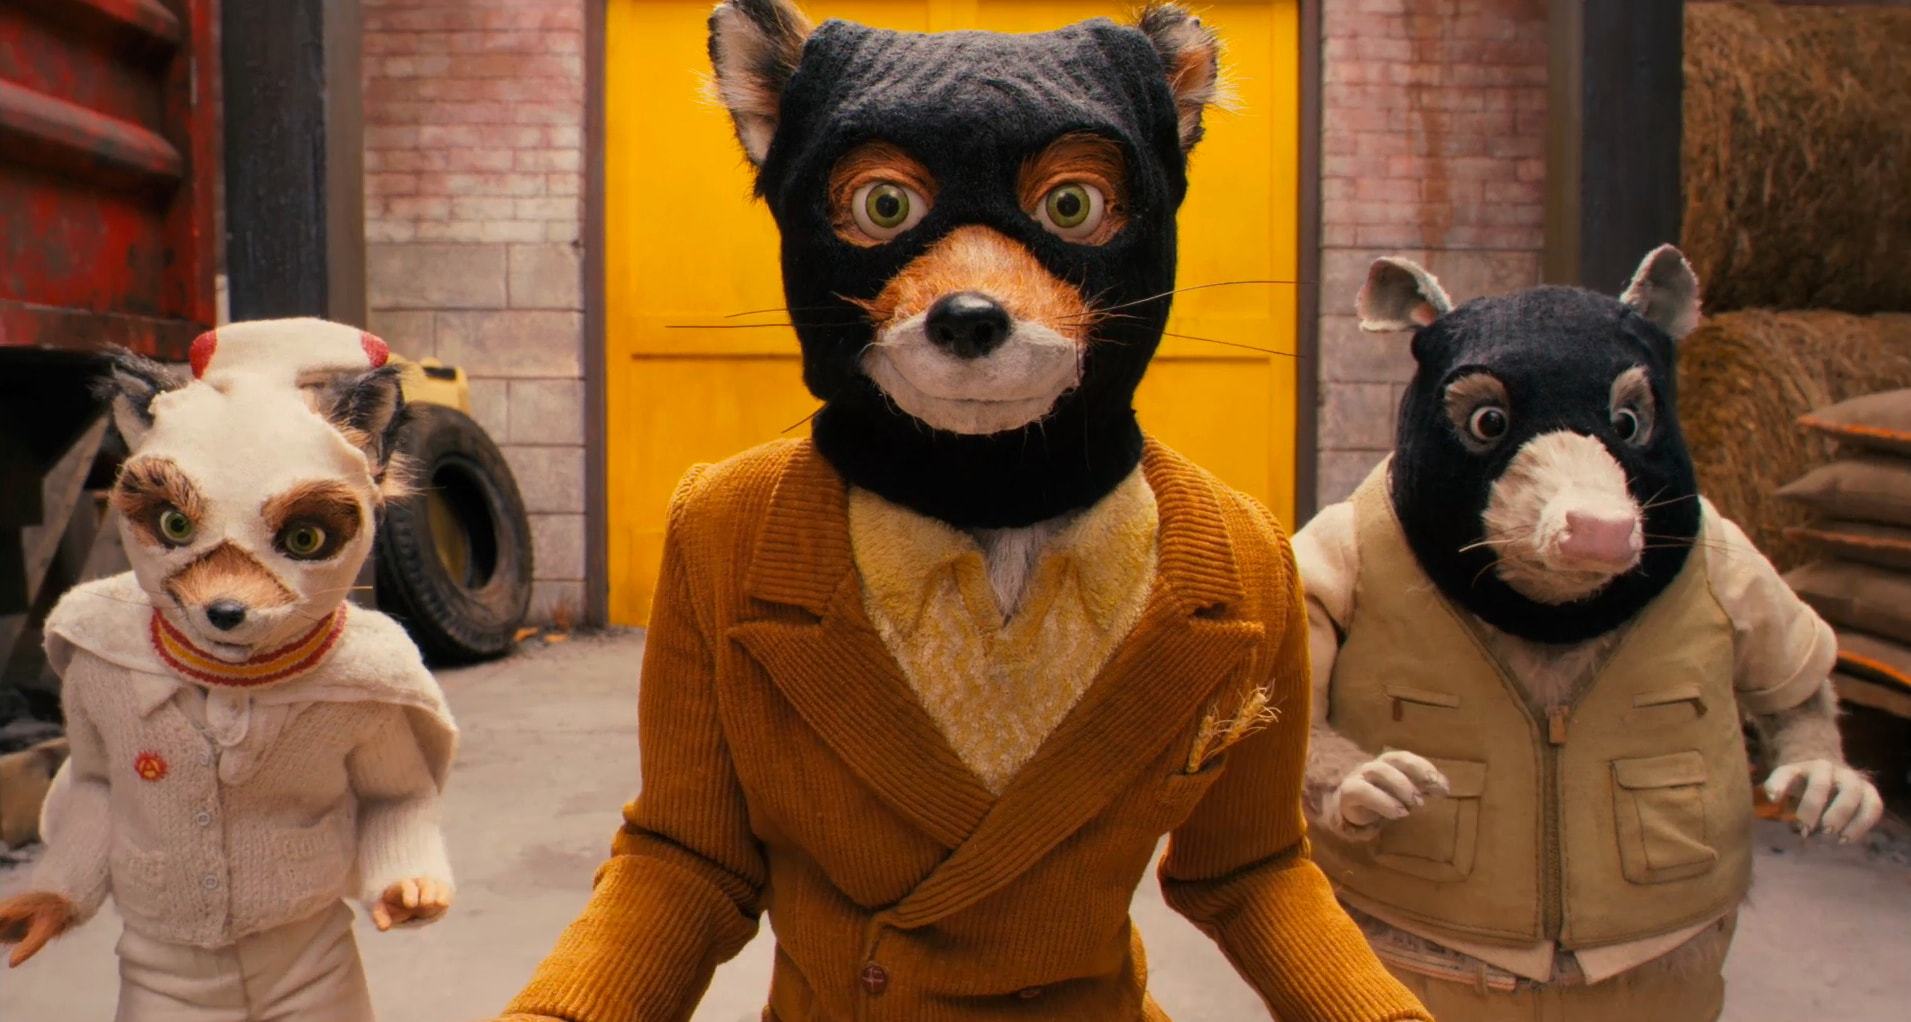 Production Sound Mixer Jobs - Production Sound Mixer Fantastic Mr. Fox Example - ProductionBeast